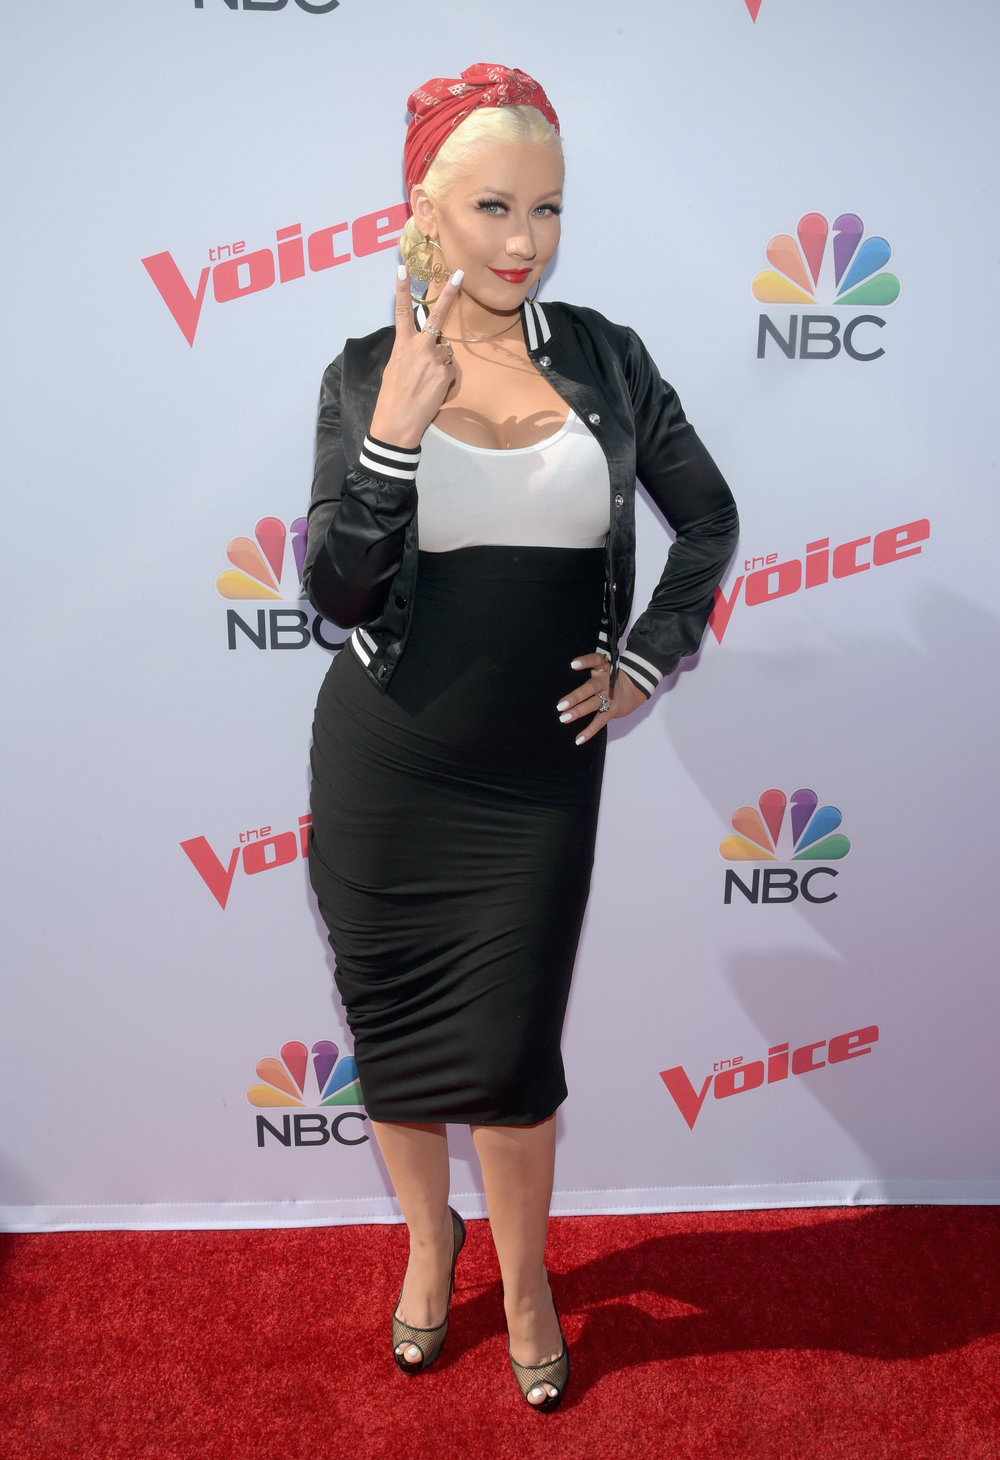 christina_aguilera_gettyimages-522976482.jpg